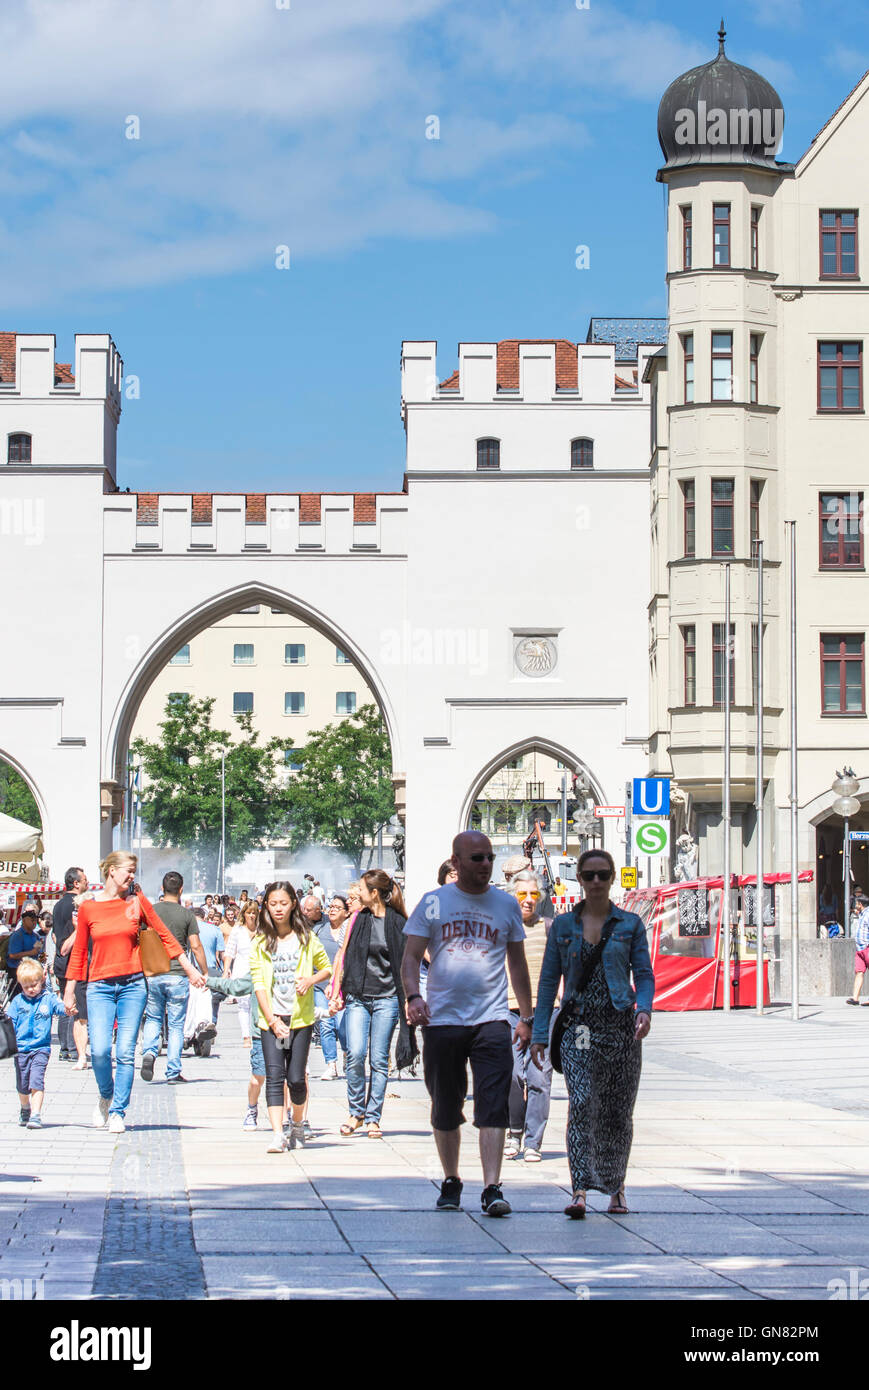 Tourists in the pedestrian area of Munich - Stock Image